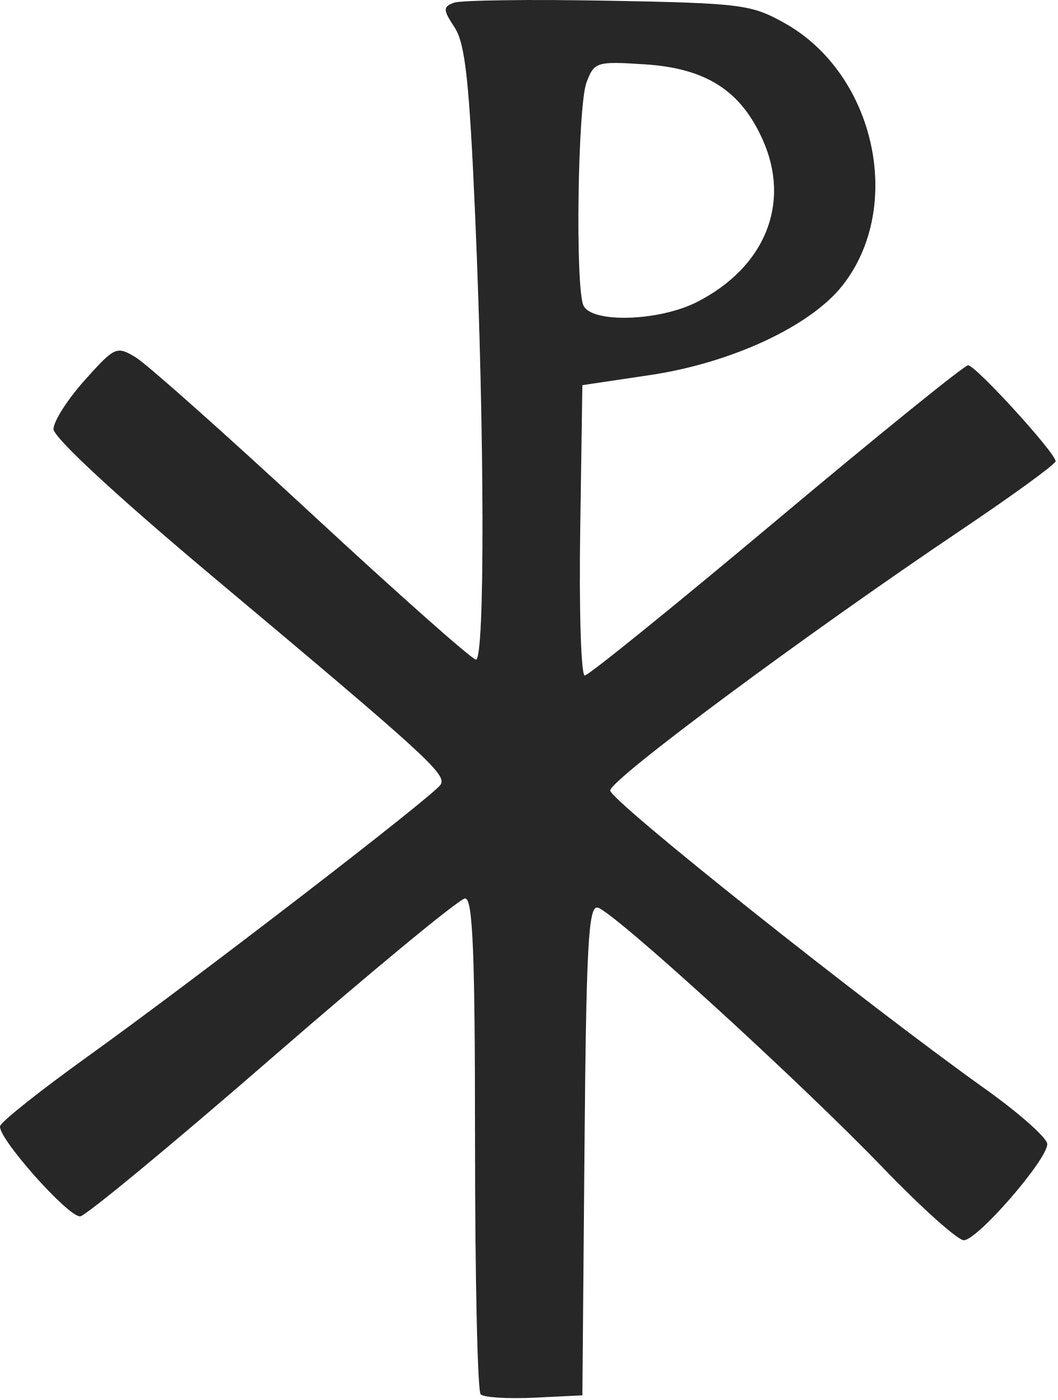 Chi Rho Religionfacts